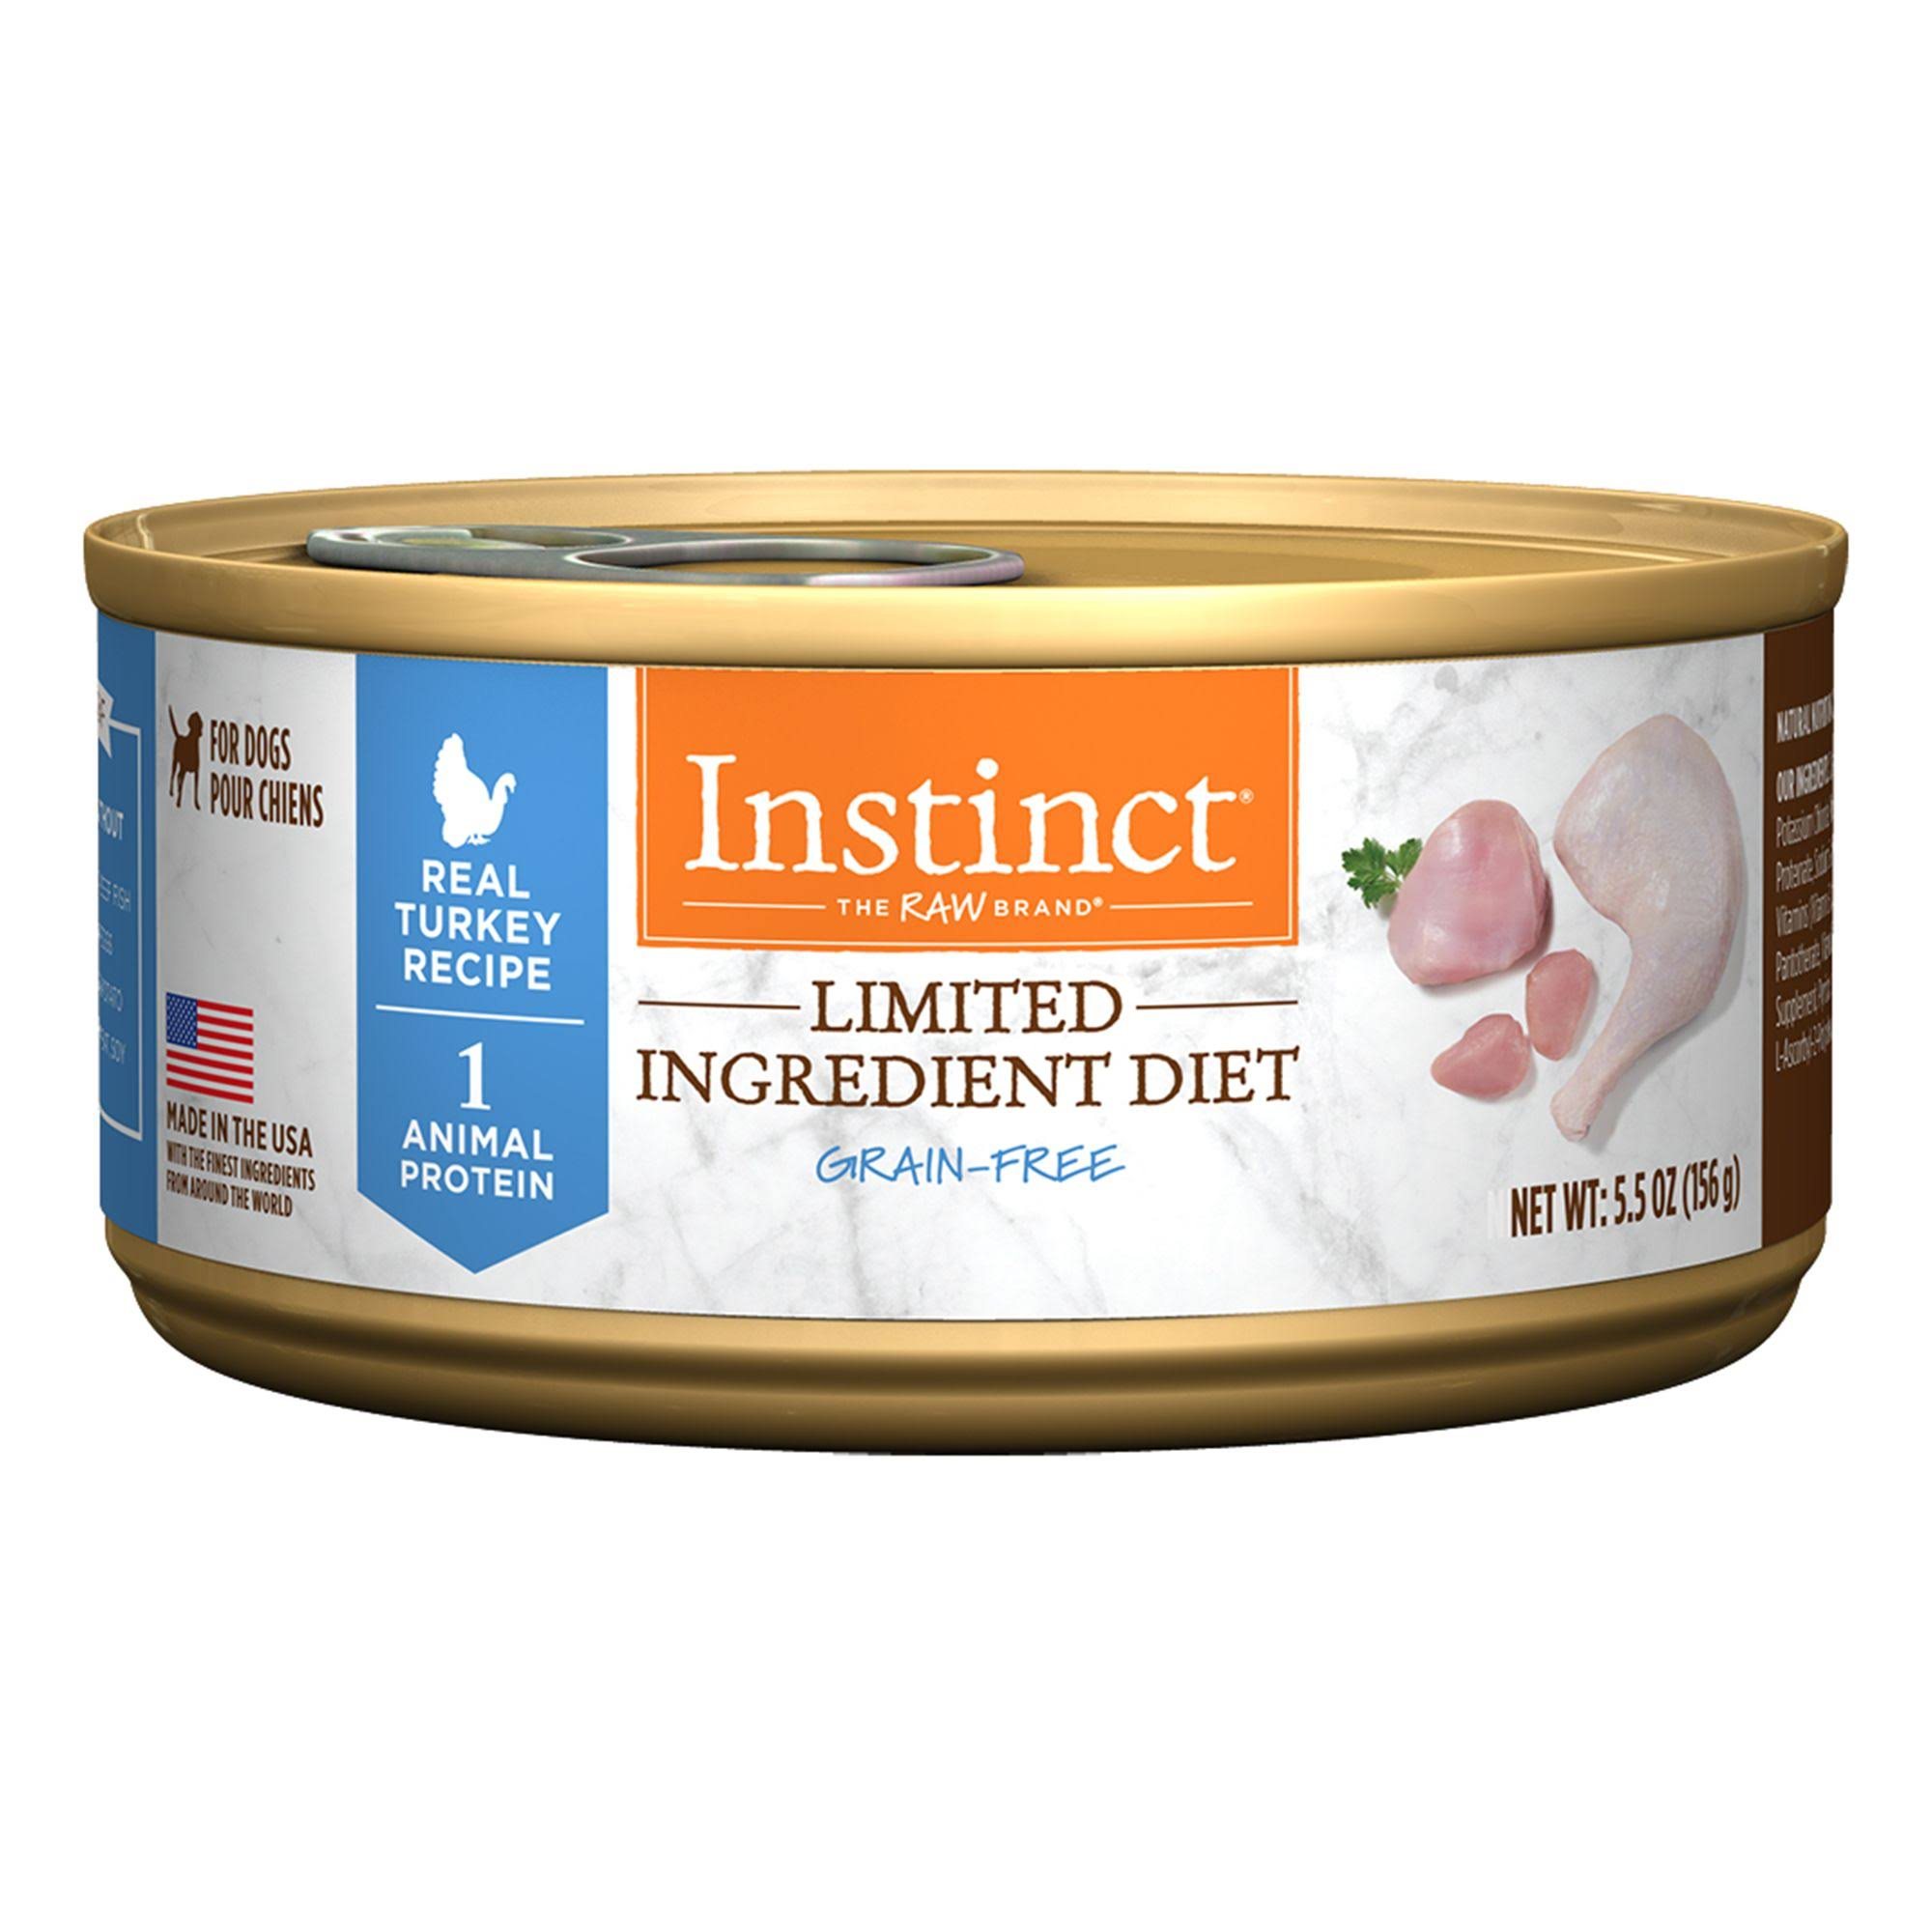 Nature's Variety Instinct Grain-Free Limited Ingredient Diet Canned Dog Food - Turkey Formula